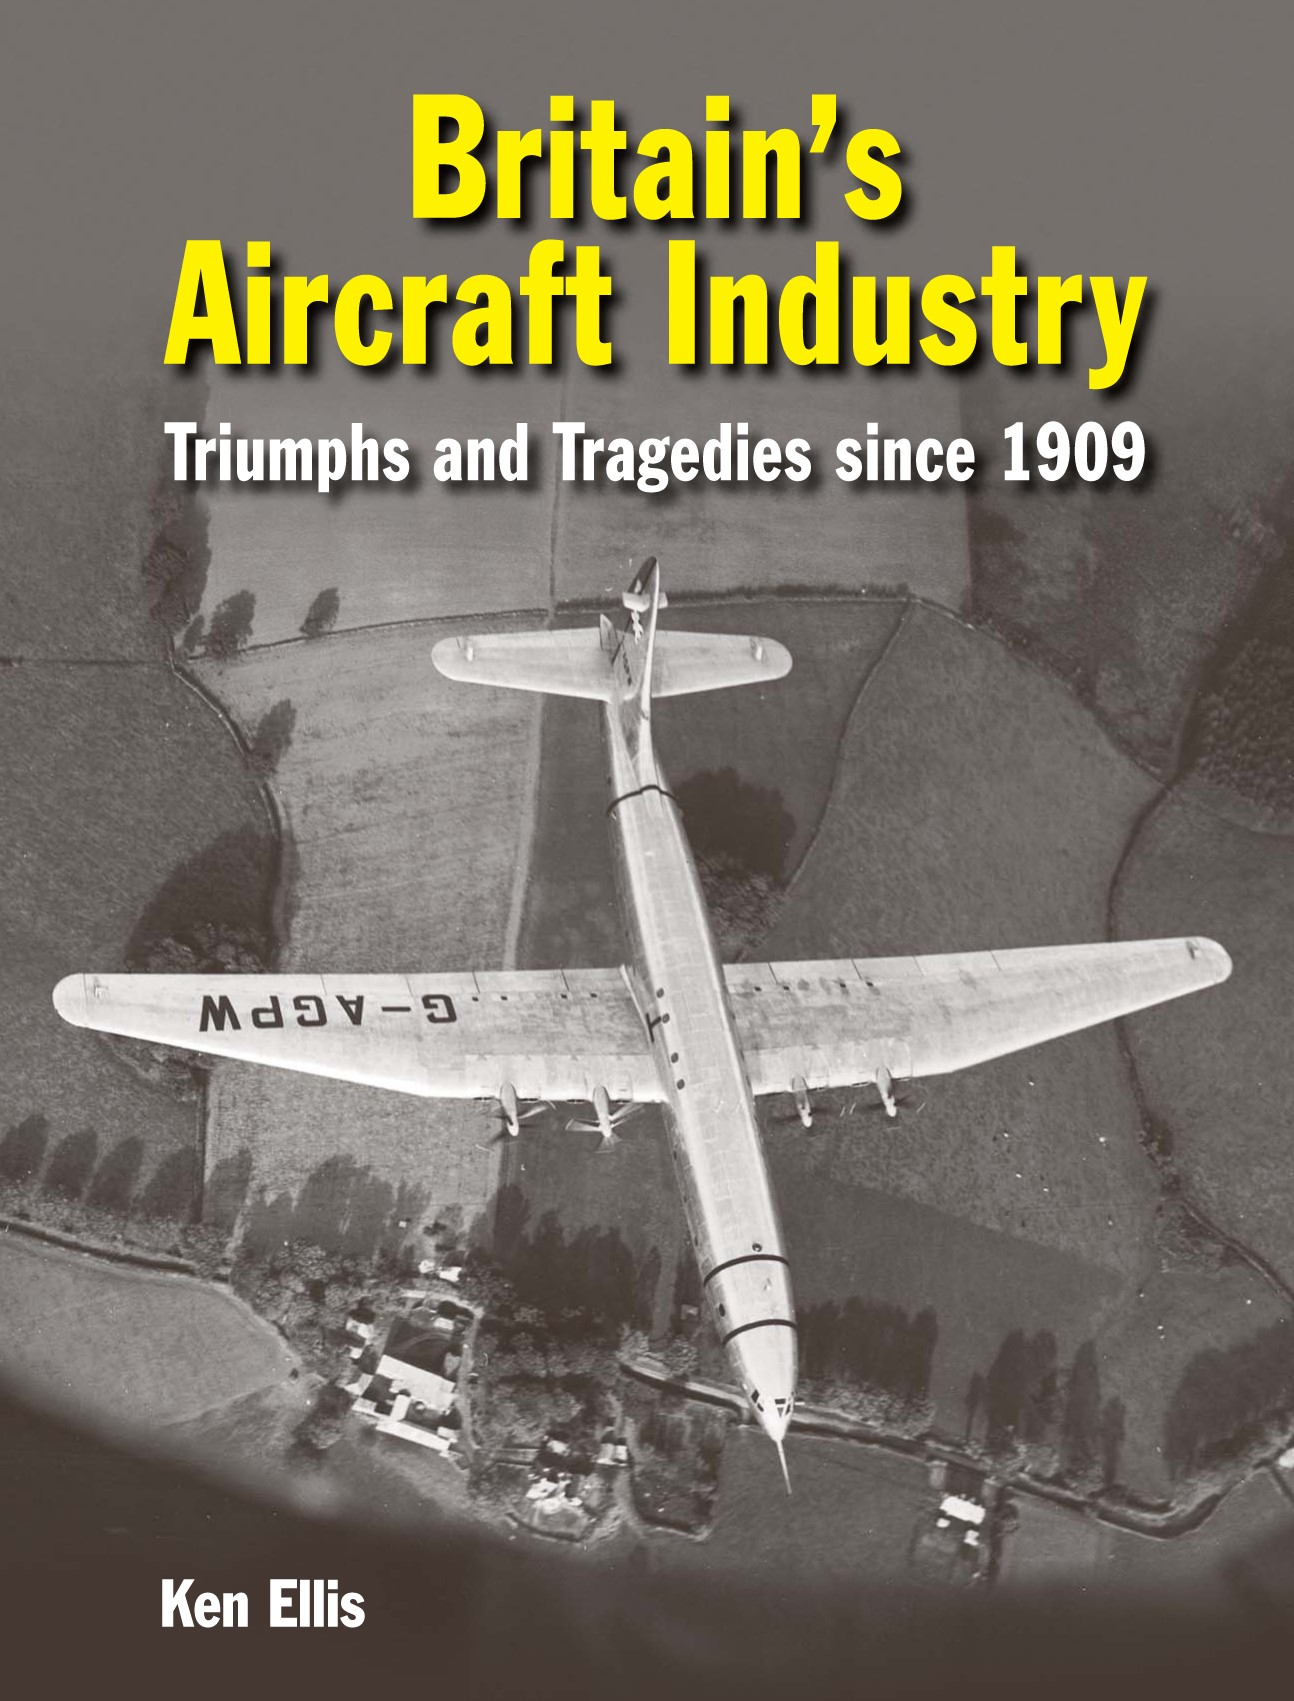 Britain's Aircraft Industry Triumphs and Tragedies since 1909